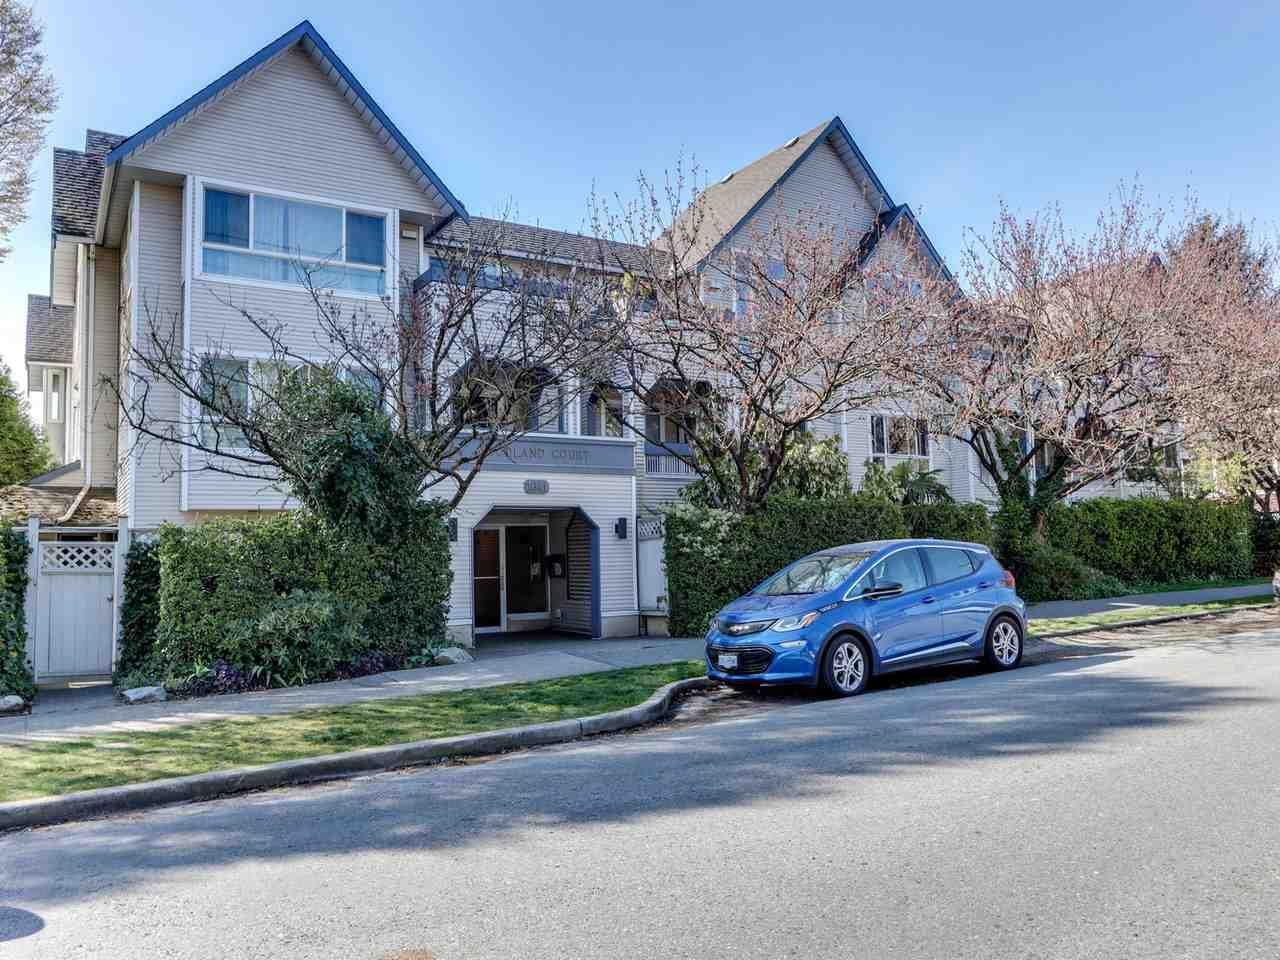 """Main Photo: 105 1641 WOODLAND Drive in Vancouver: Grandview Woodland Condo for sale in """"Woodland Court"""" (Vancouver East)  : MLS®# R2564541"""